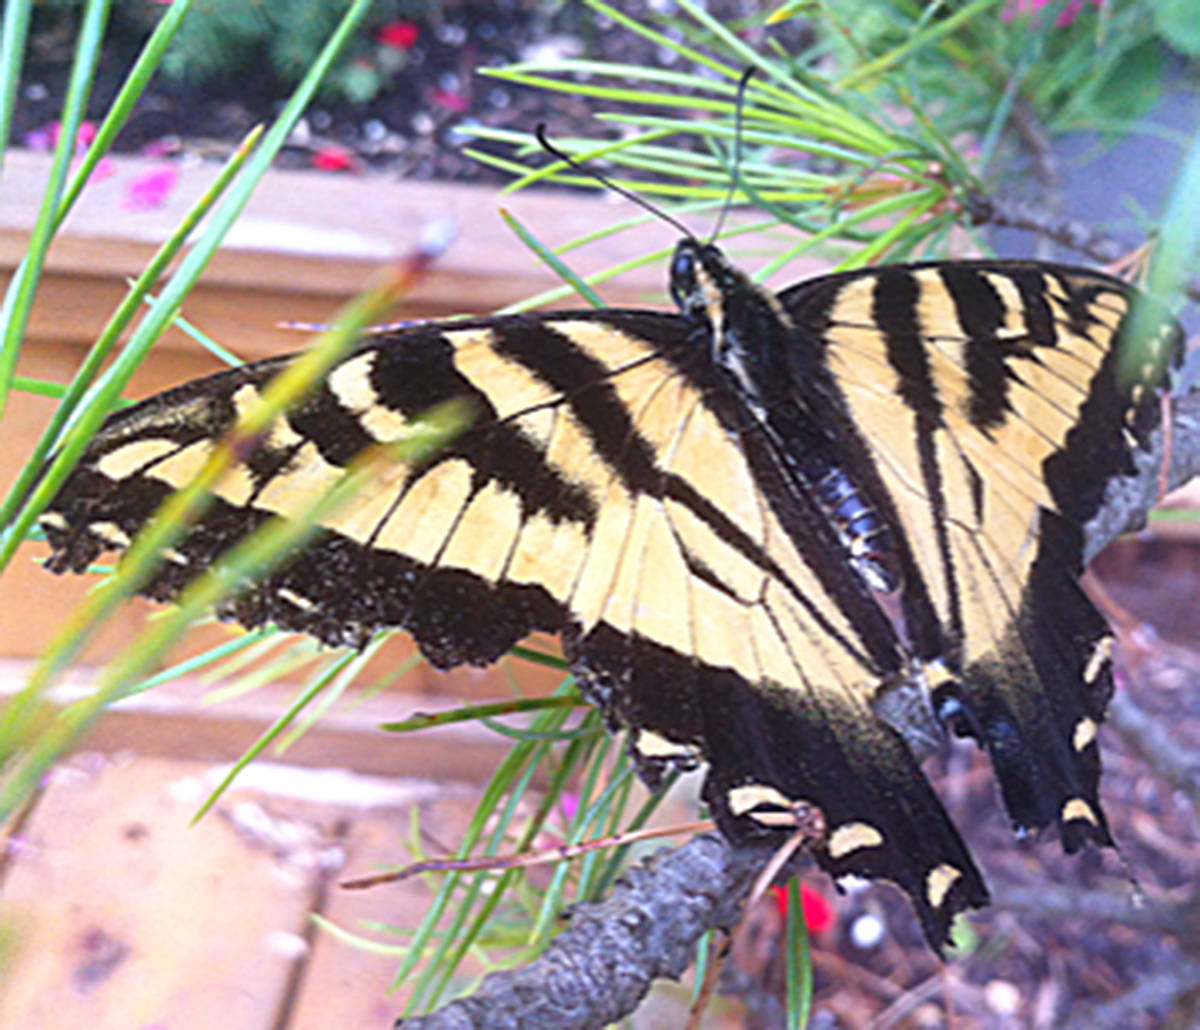 Lauren Costello, six, took a picture of a yellow tiger swallowtail butterfly in the backyard of their family home in the Hyland Creek area of Langley, near The Redwoods Golf Course. (Lauren Costello/Special to the Langley Advance)